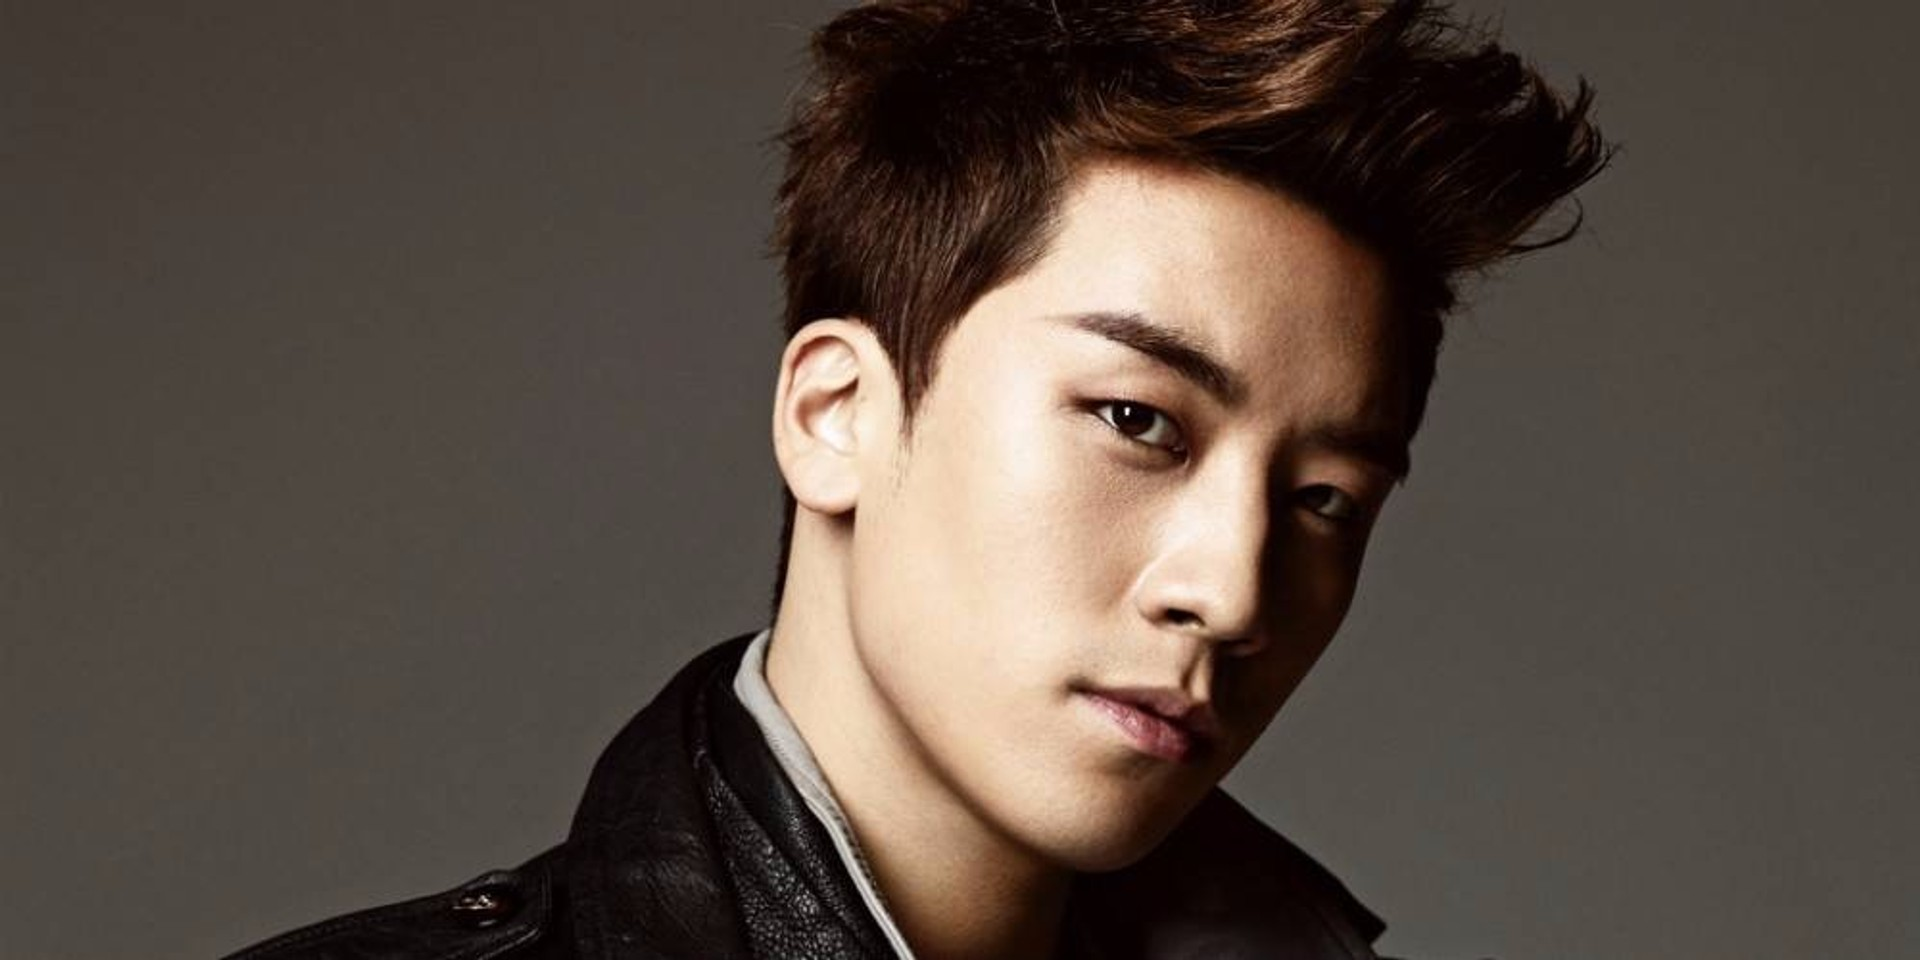 Big Bang's Seungri to make Manila debut with Natural High Record roster